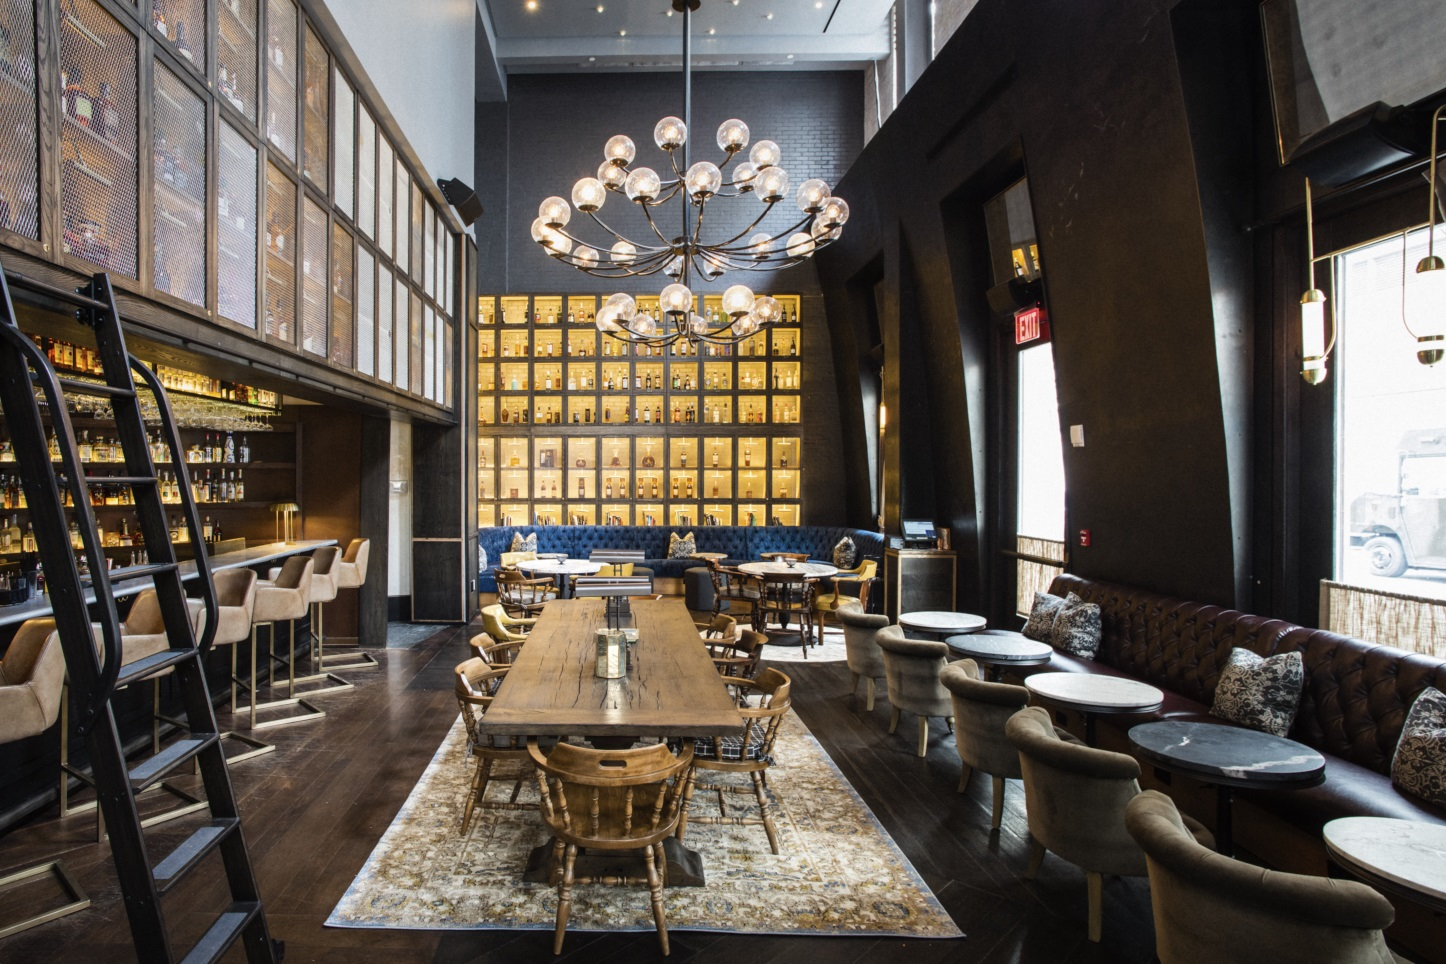 Photo #7 Library of Distilled Spirits at Bowery Road Restaurant